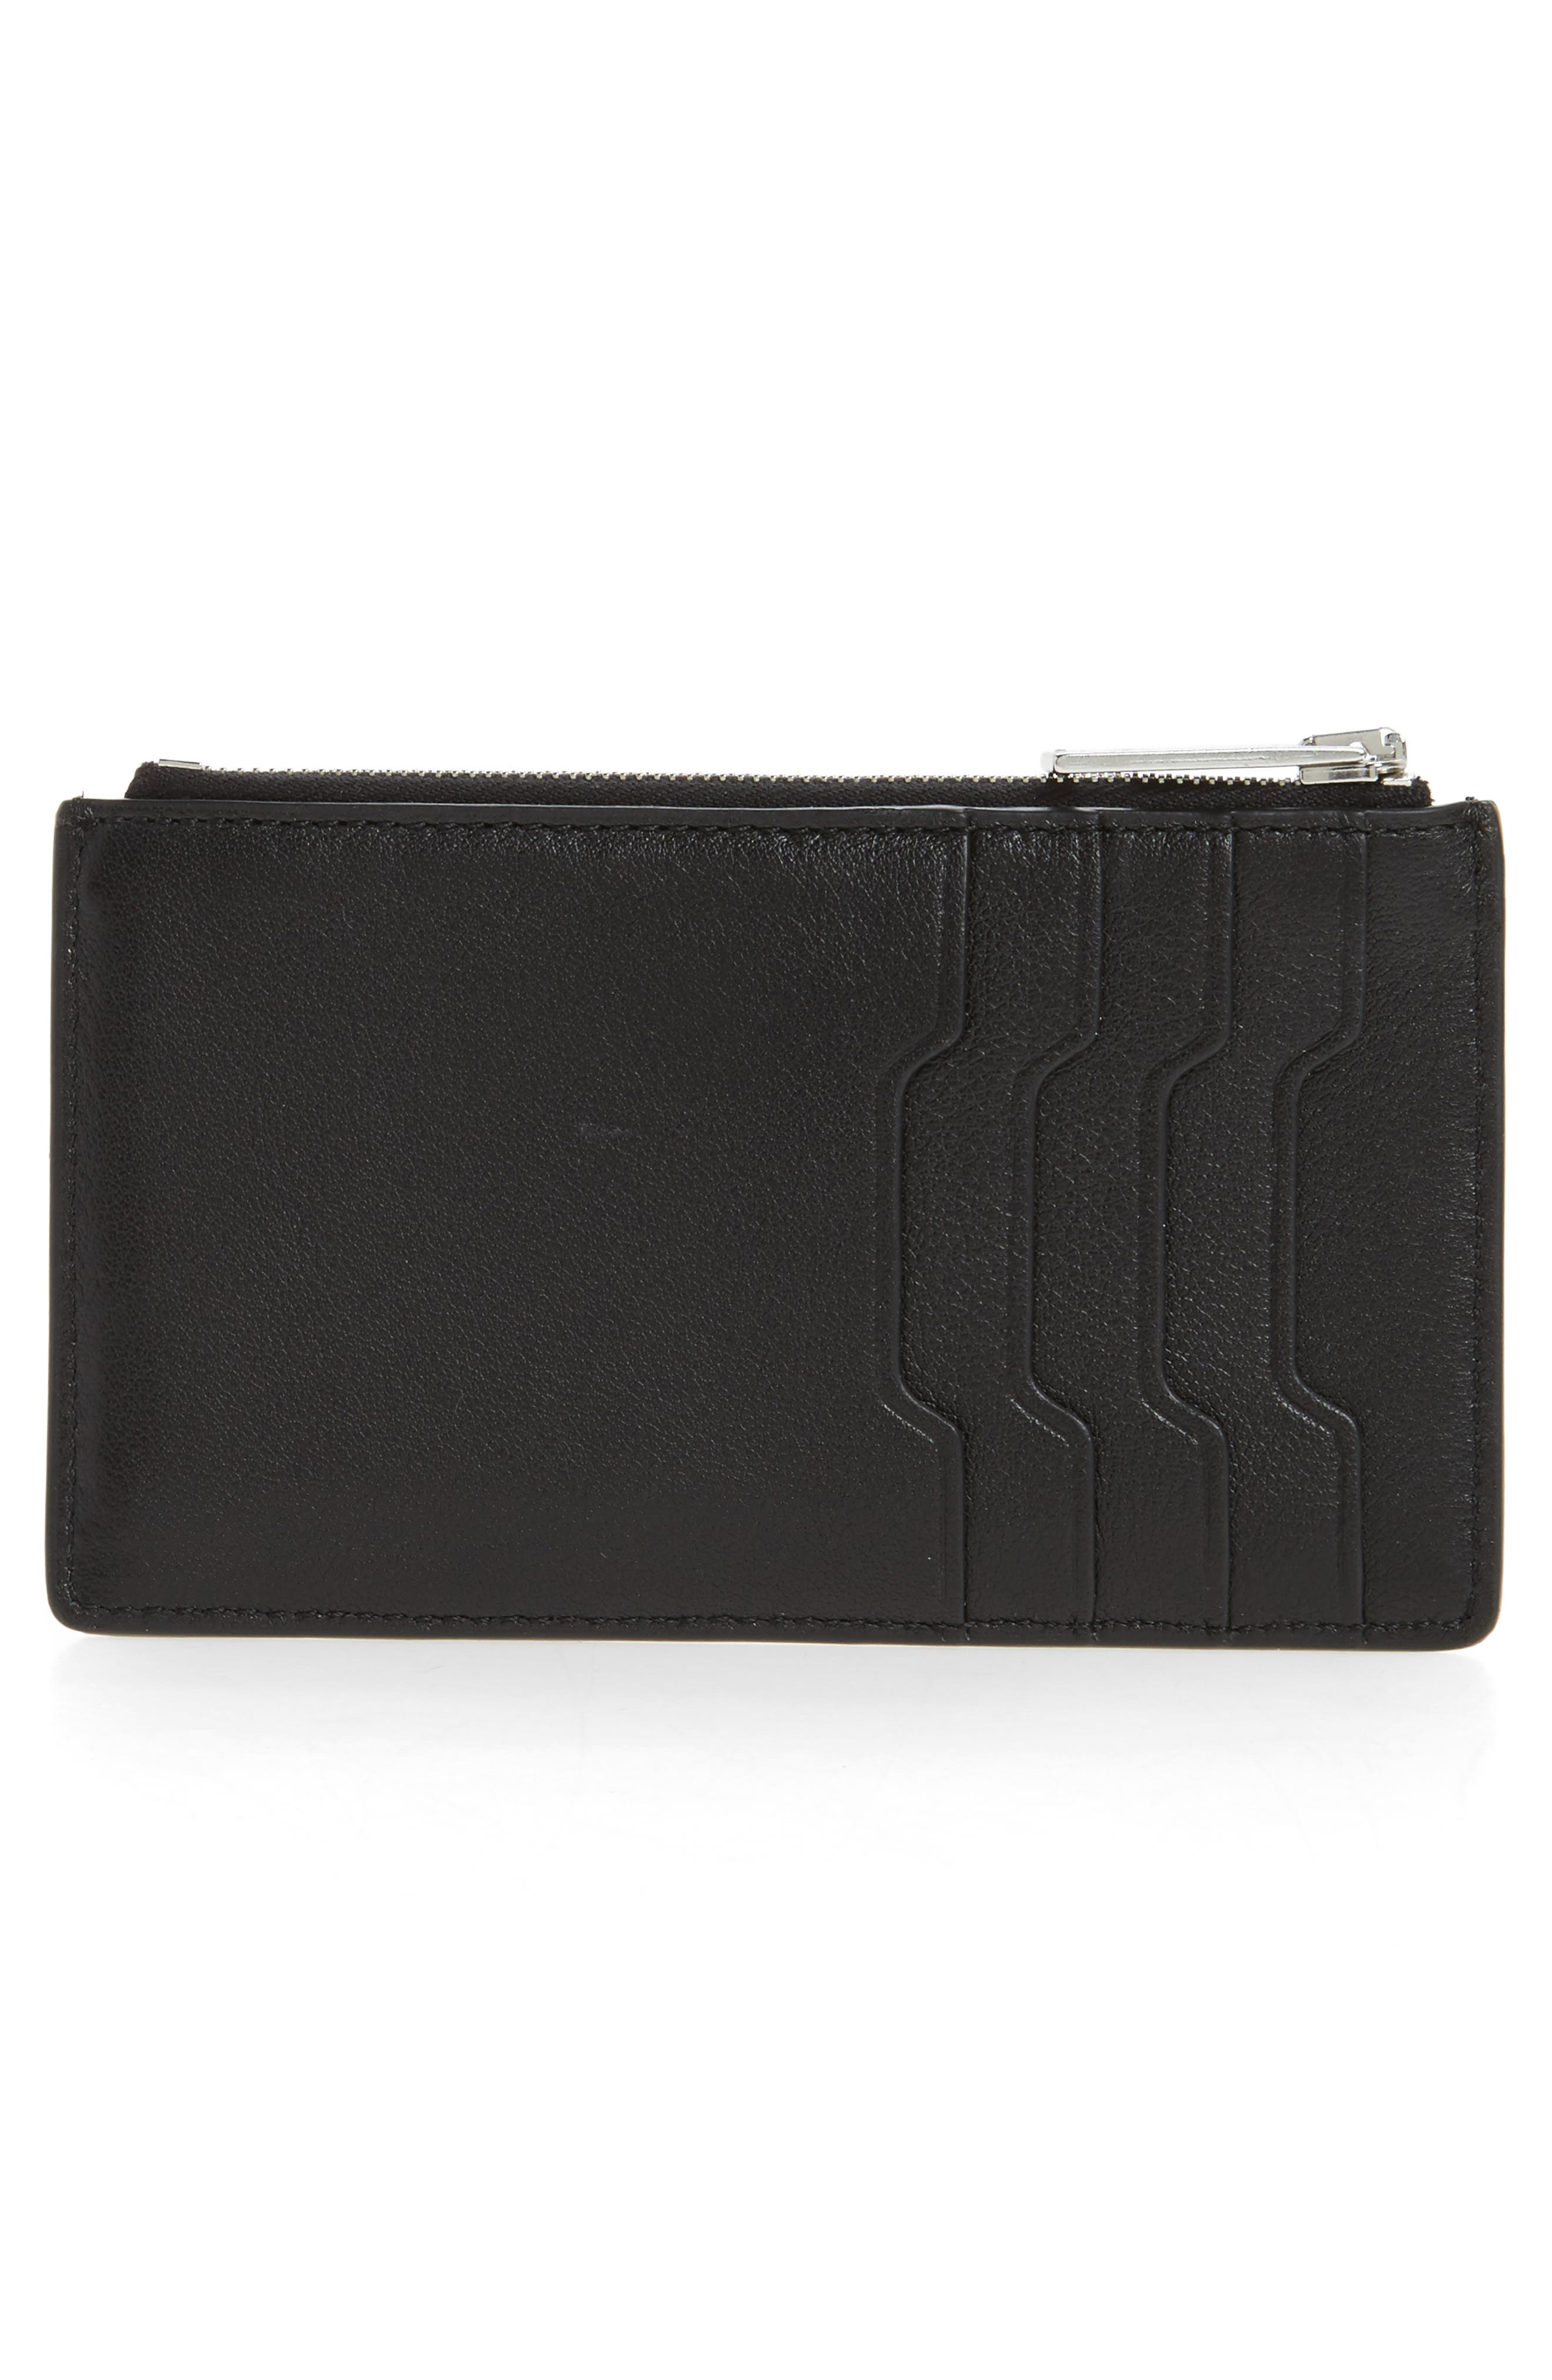 Studded Leather Card Case,                             Alternate thumbnail 3, color,                             001